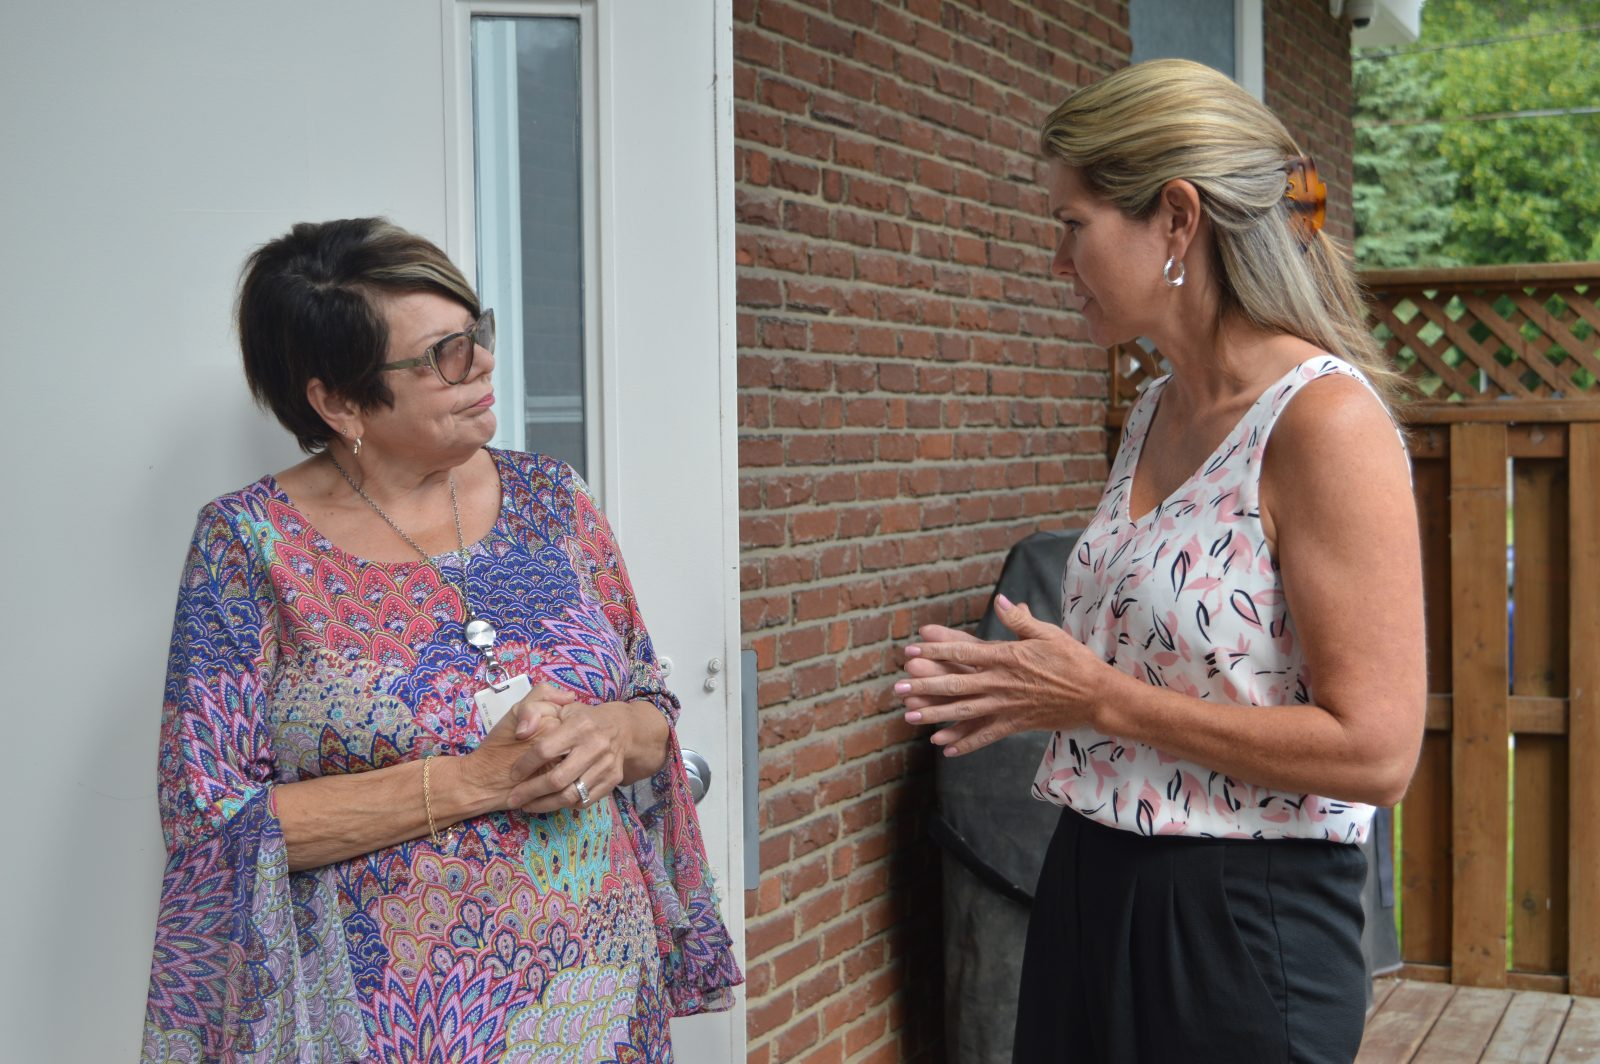 Associate Minister visits Maison Baldwin House